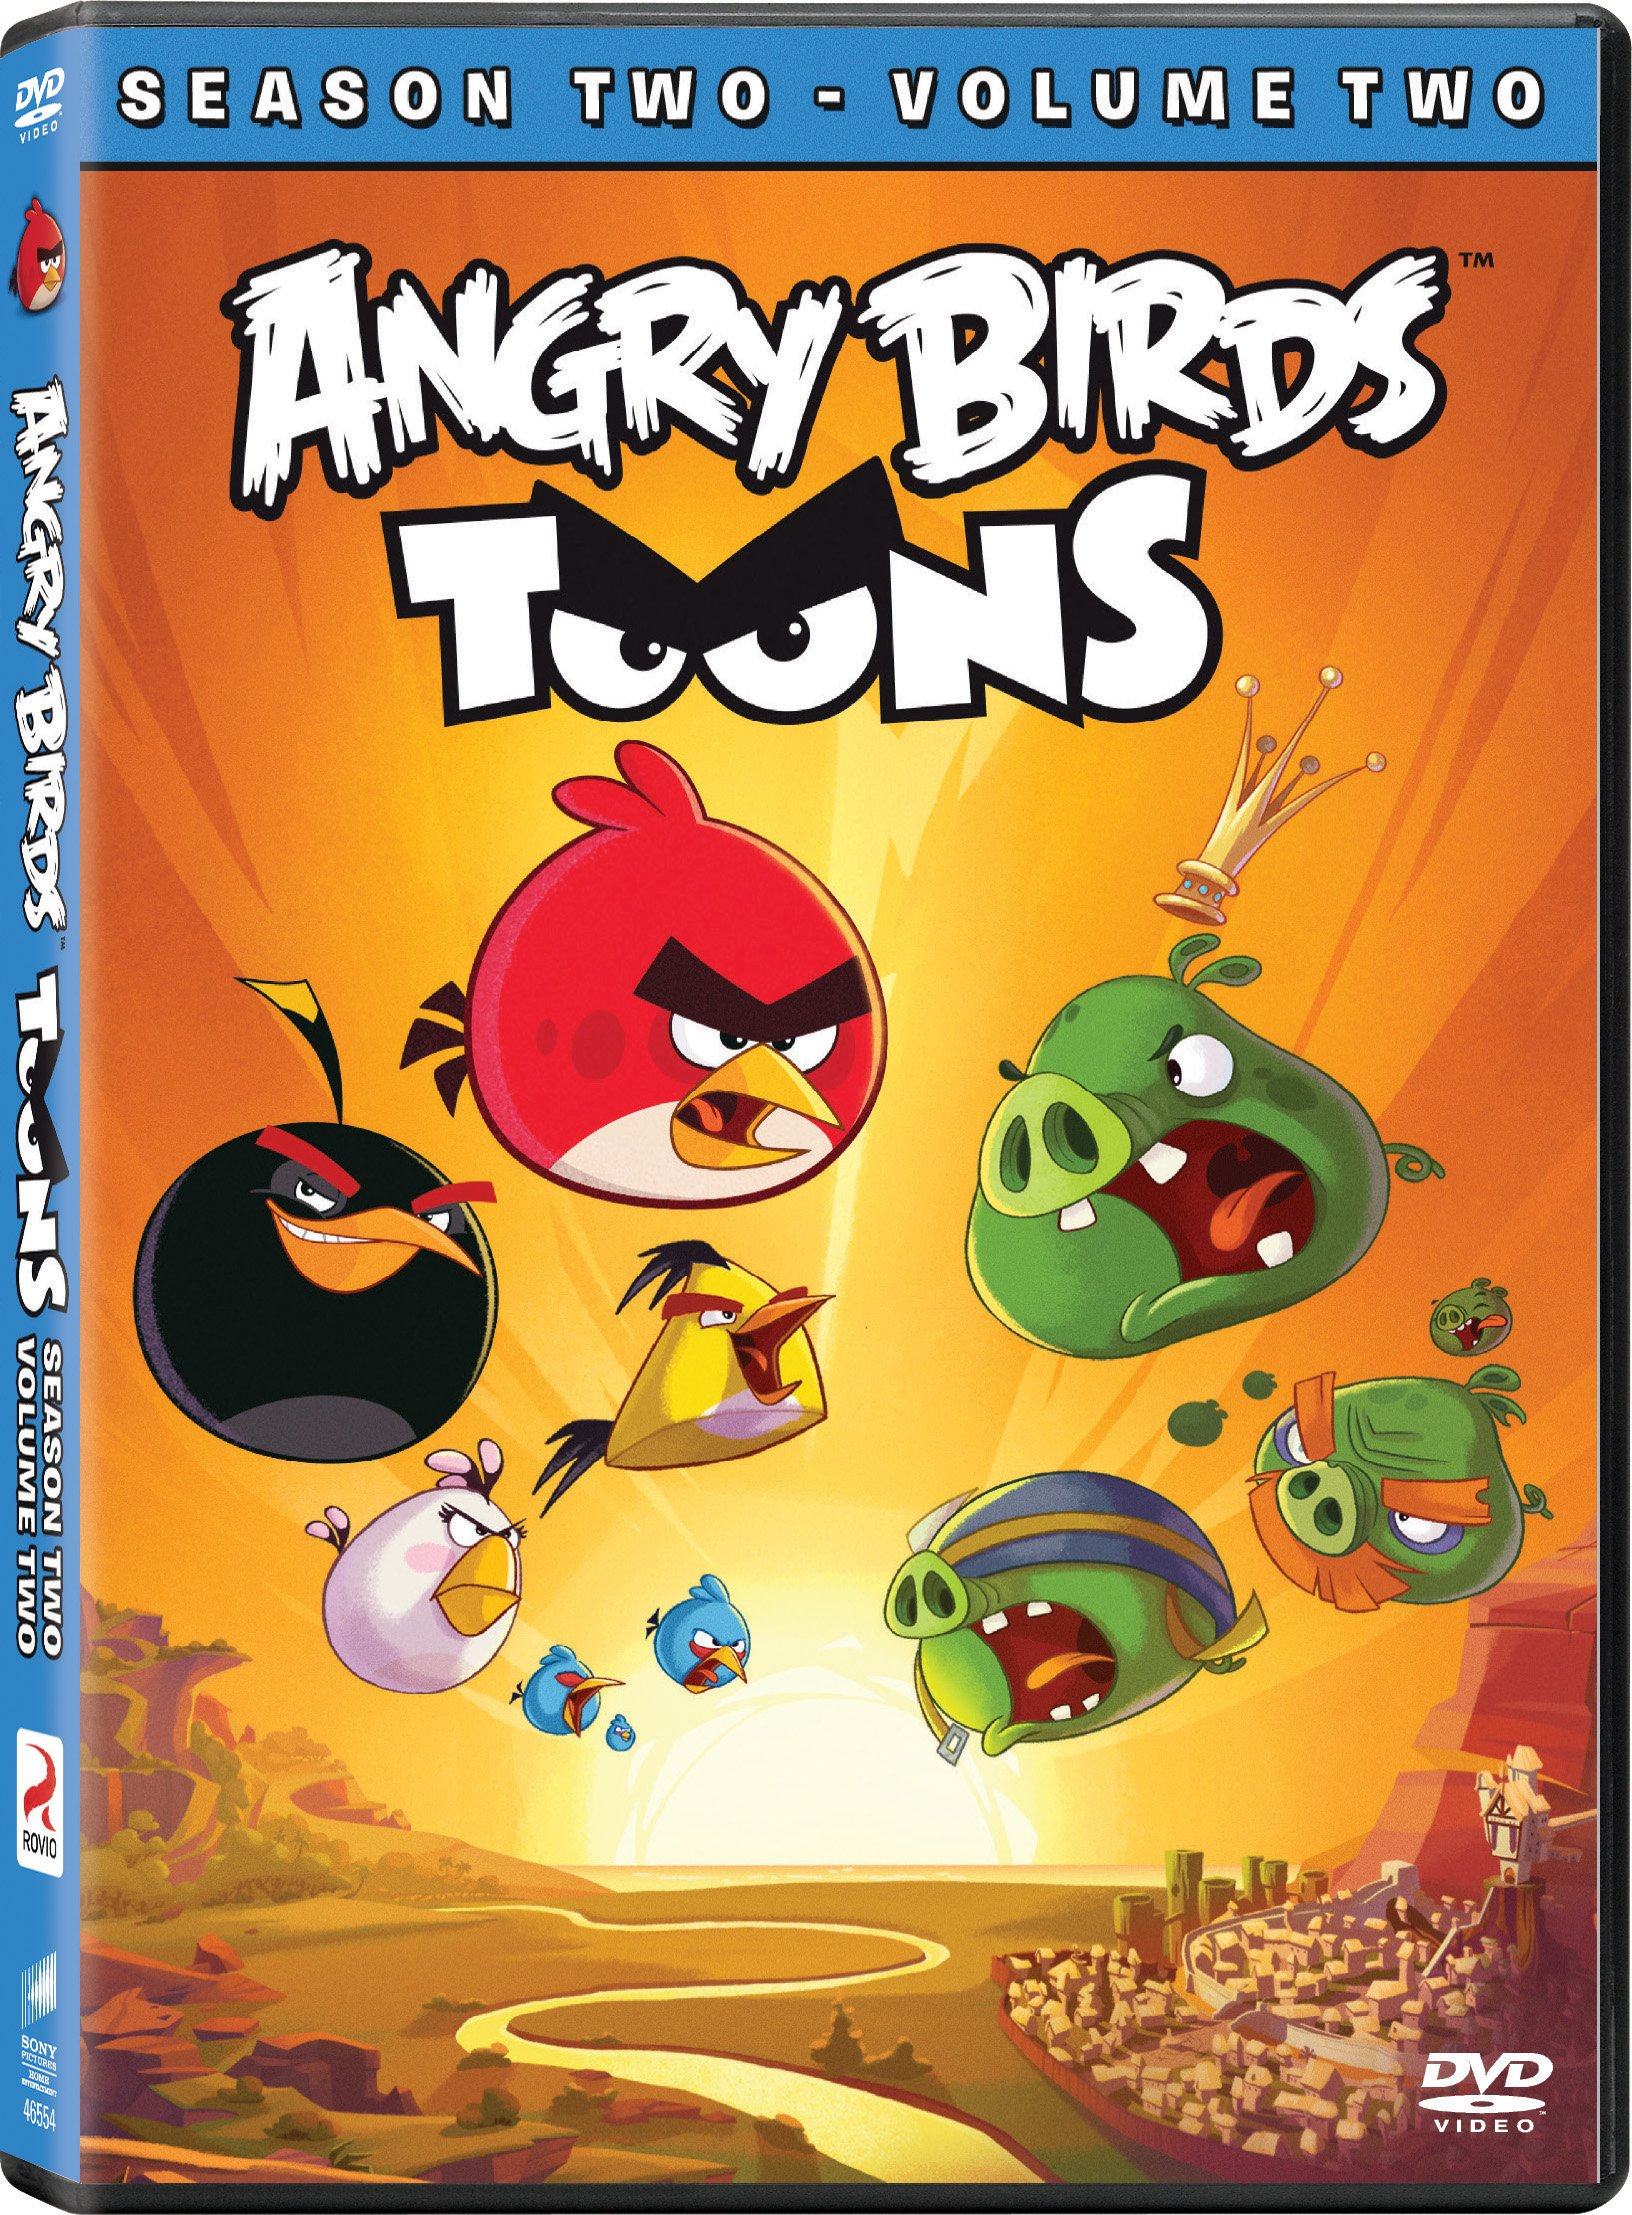 Angry Birds Toons - Season 02, Volume 02